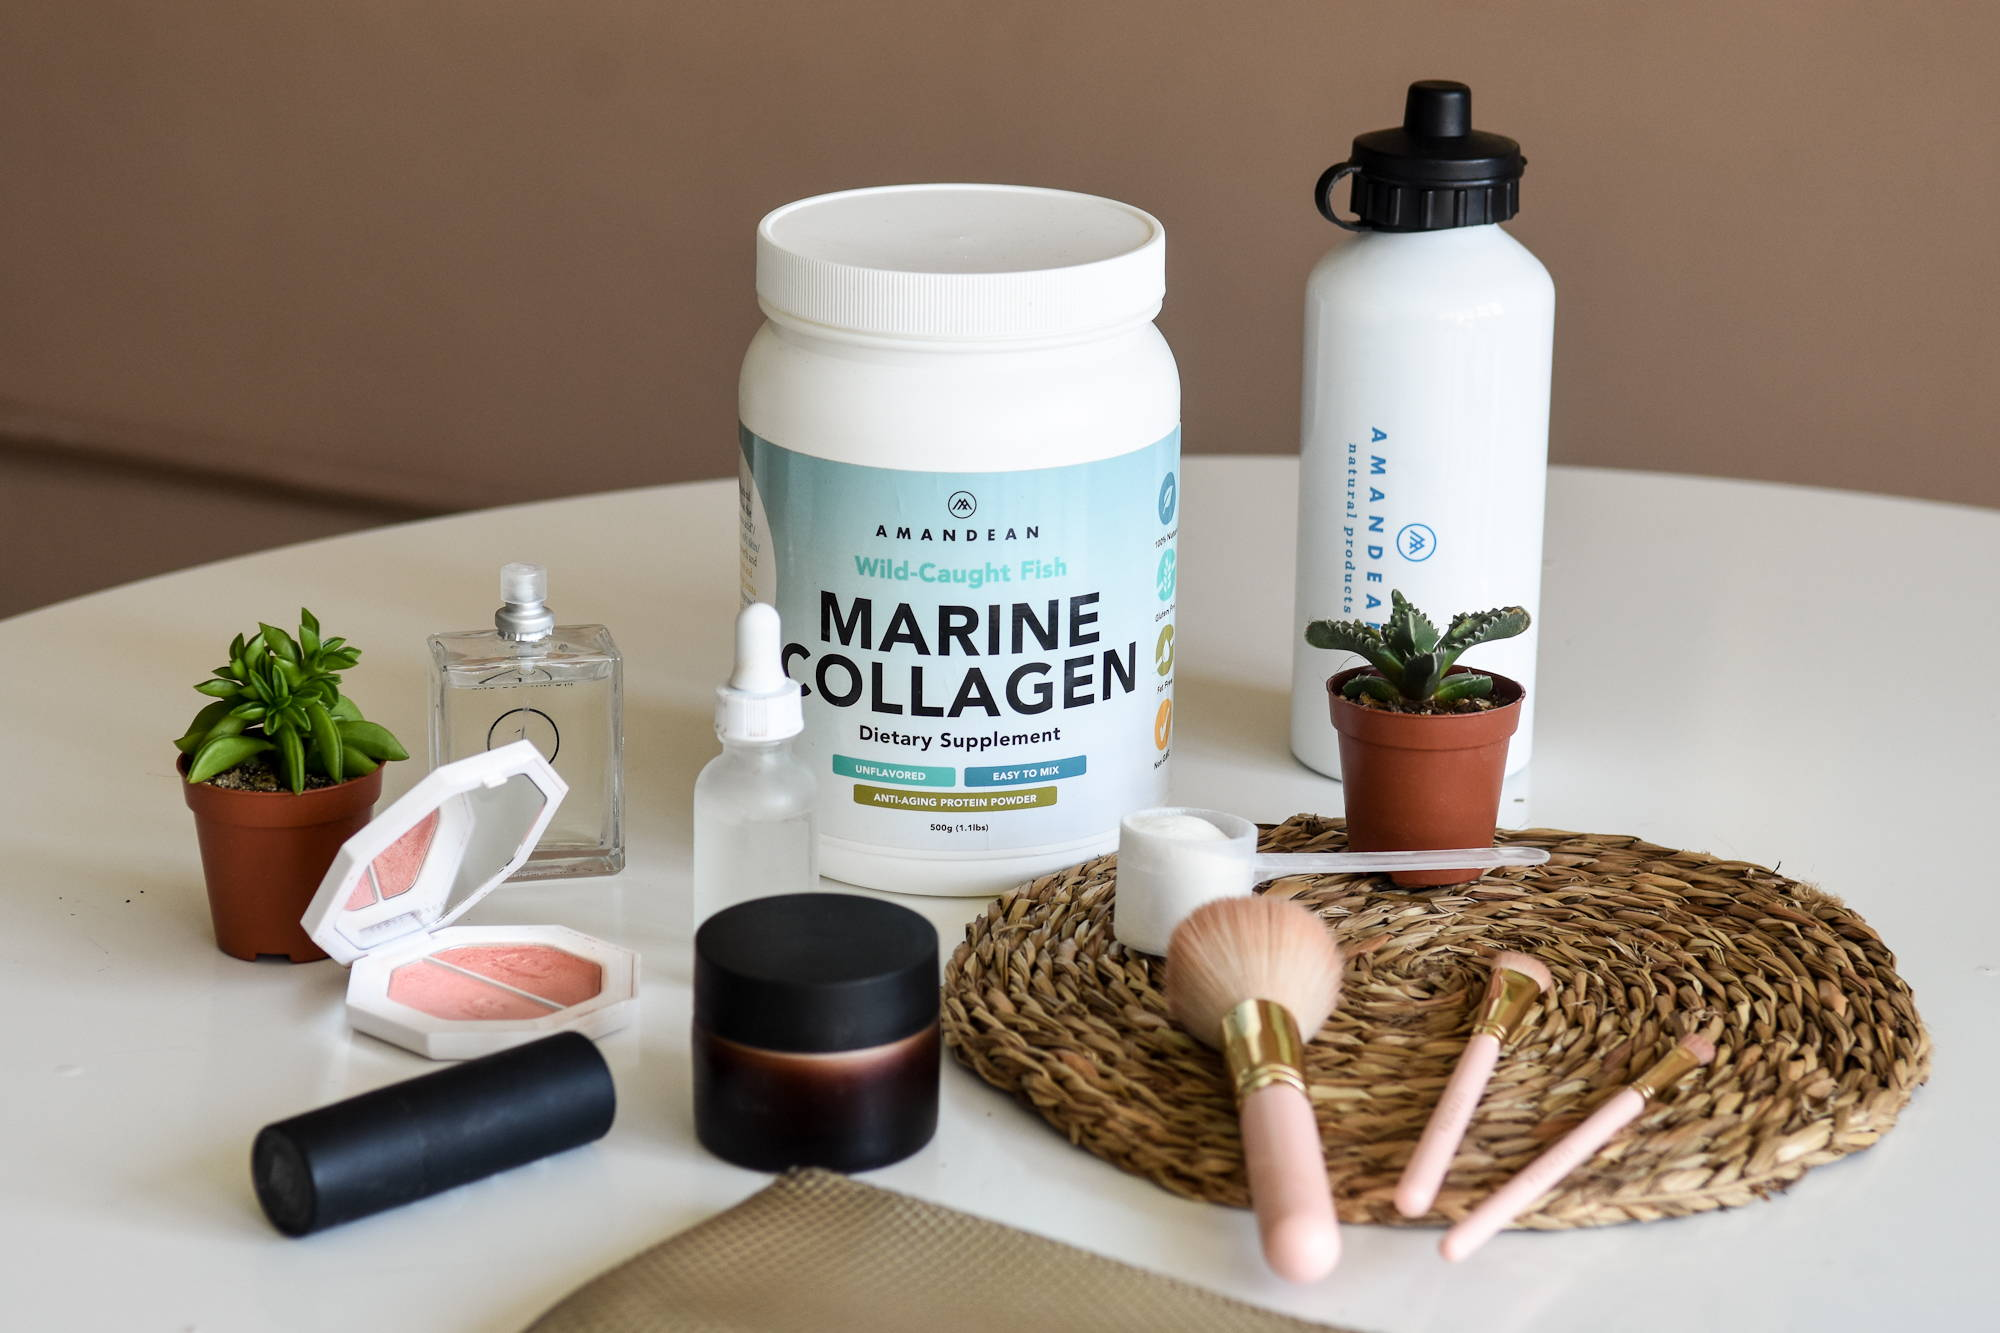 Wild Caught Marine Collagen For Skincare and Hairloss